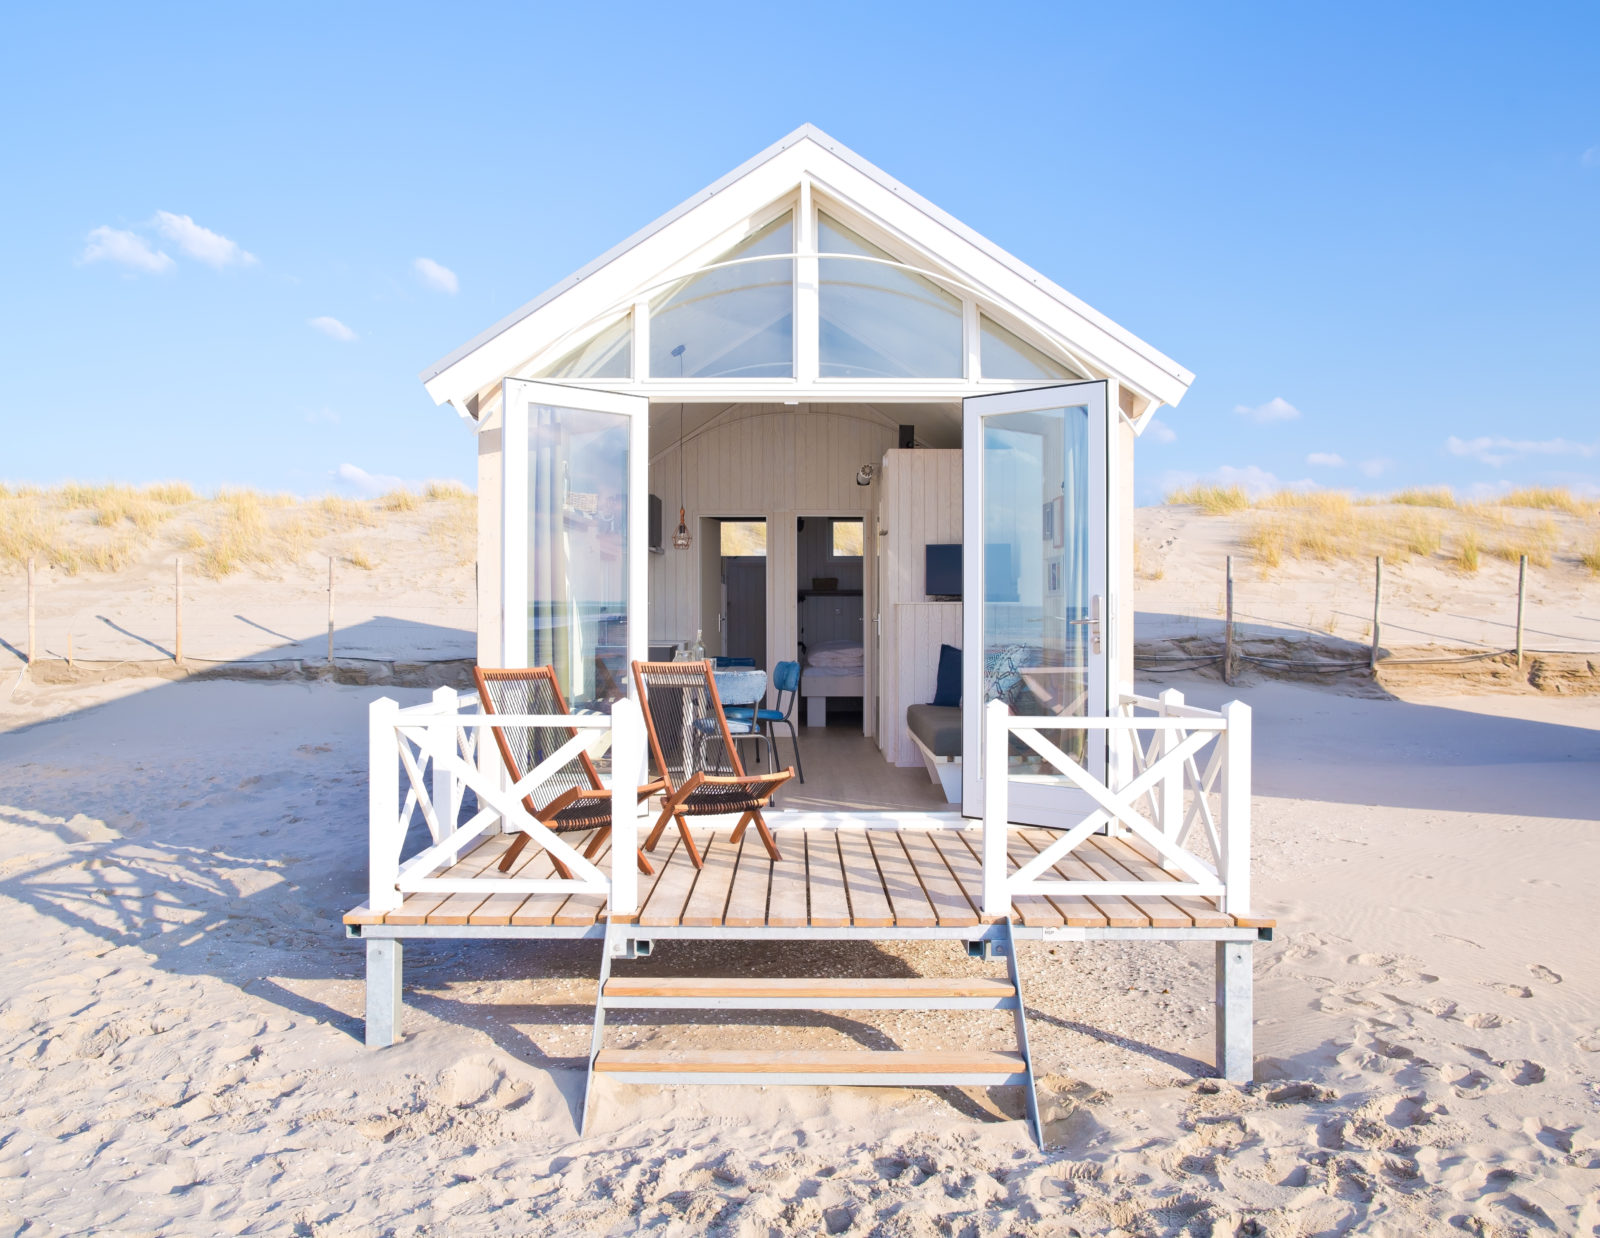 haagse strandhuisjes mytravelboektje. Black Bedroom Furniture Sets. Home Design Ideas